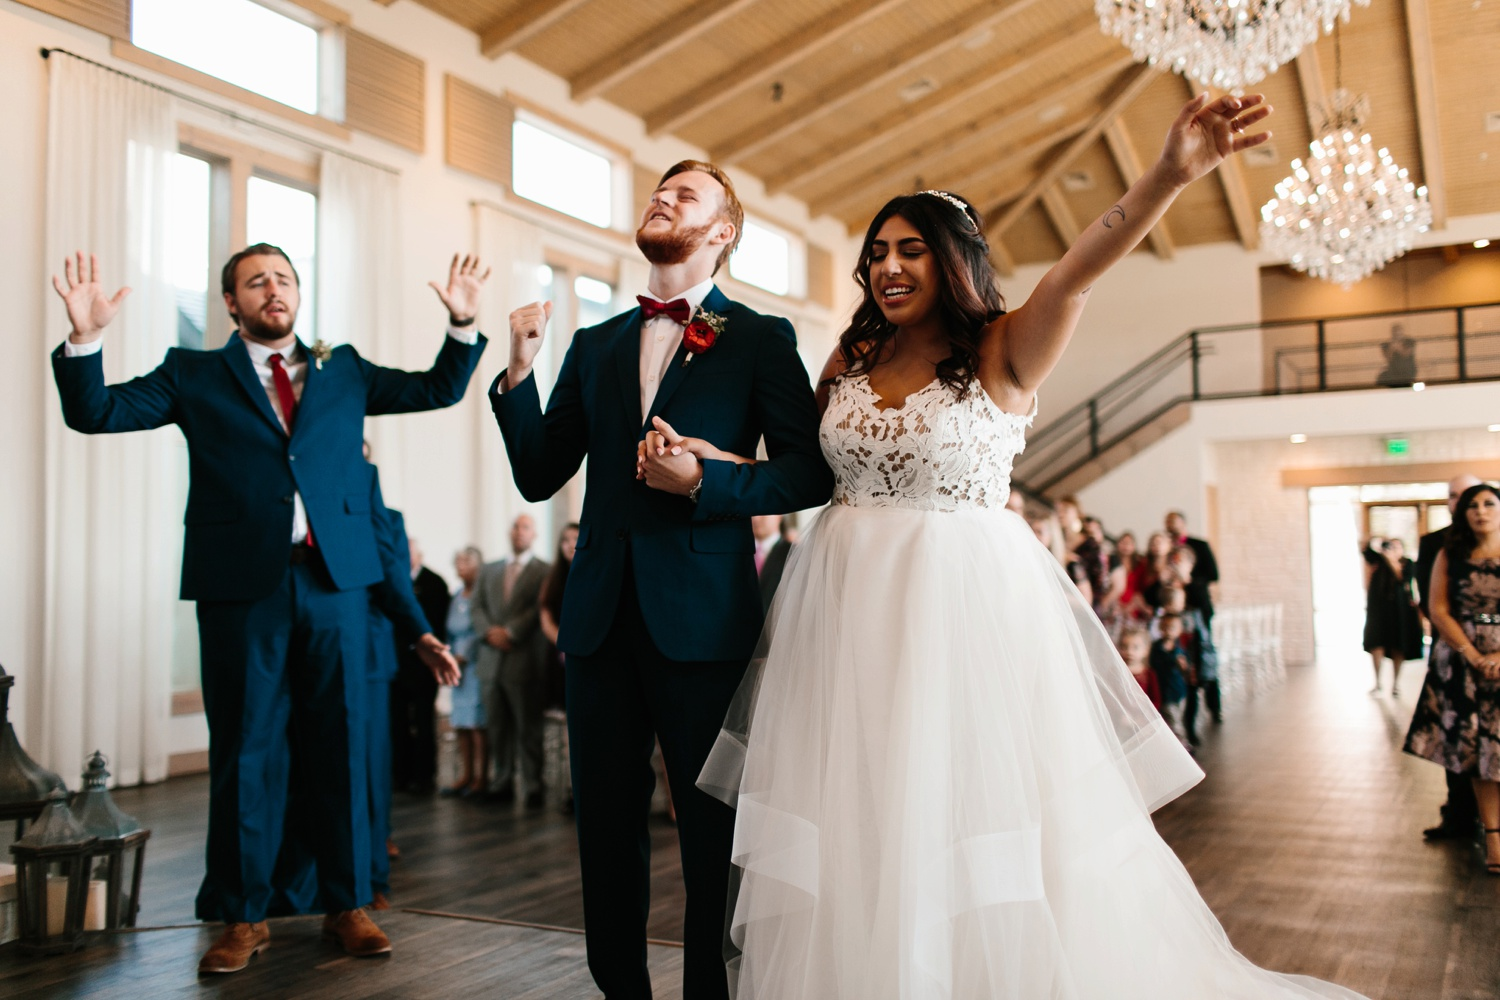 Grant + Lysette | a vibrant, deep burgundy and navy, and mixed metals wedding at Hidden Pines Chapel by North Texas Wedding Photographer Rachel Meagan Photography 073